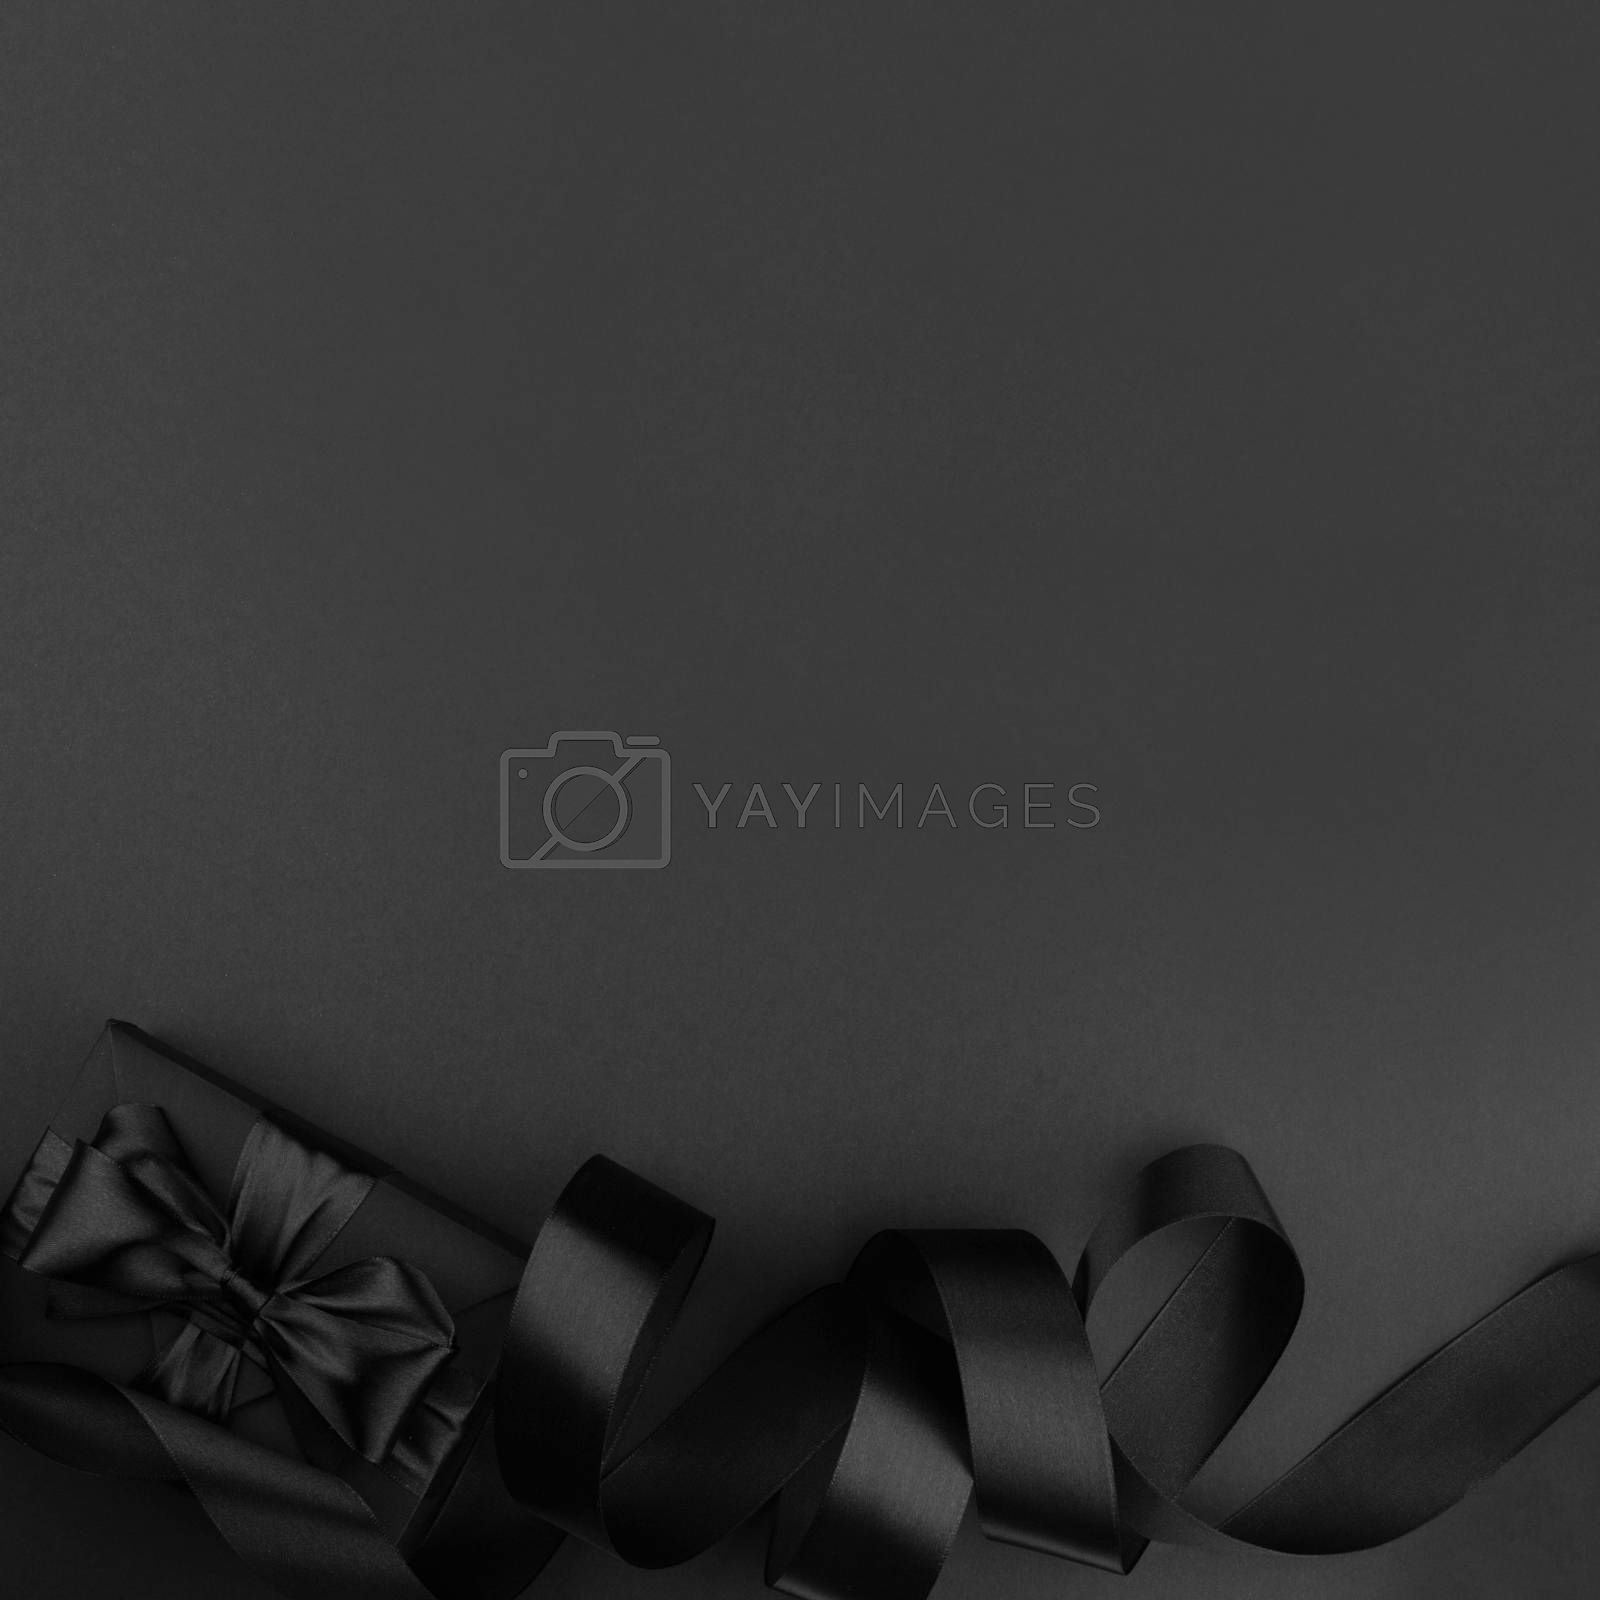 Black friday sale background with gift present box and curly ribbon with copy space for text ad